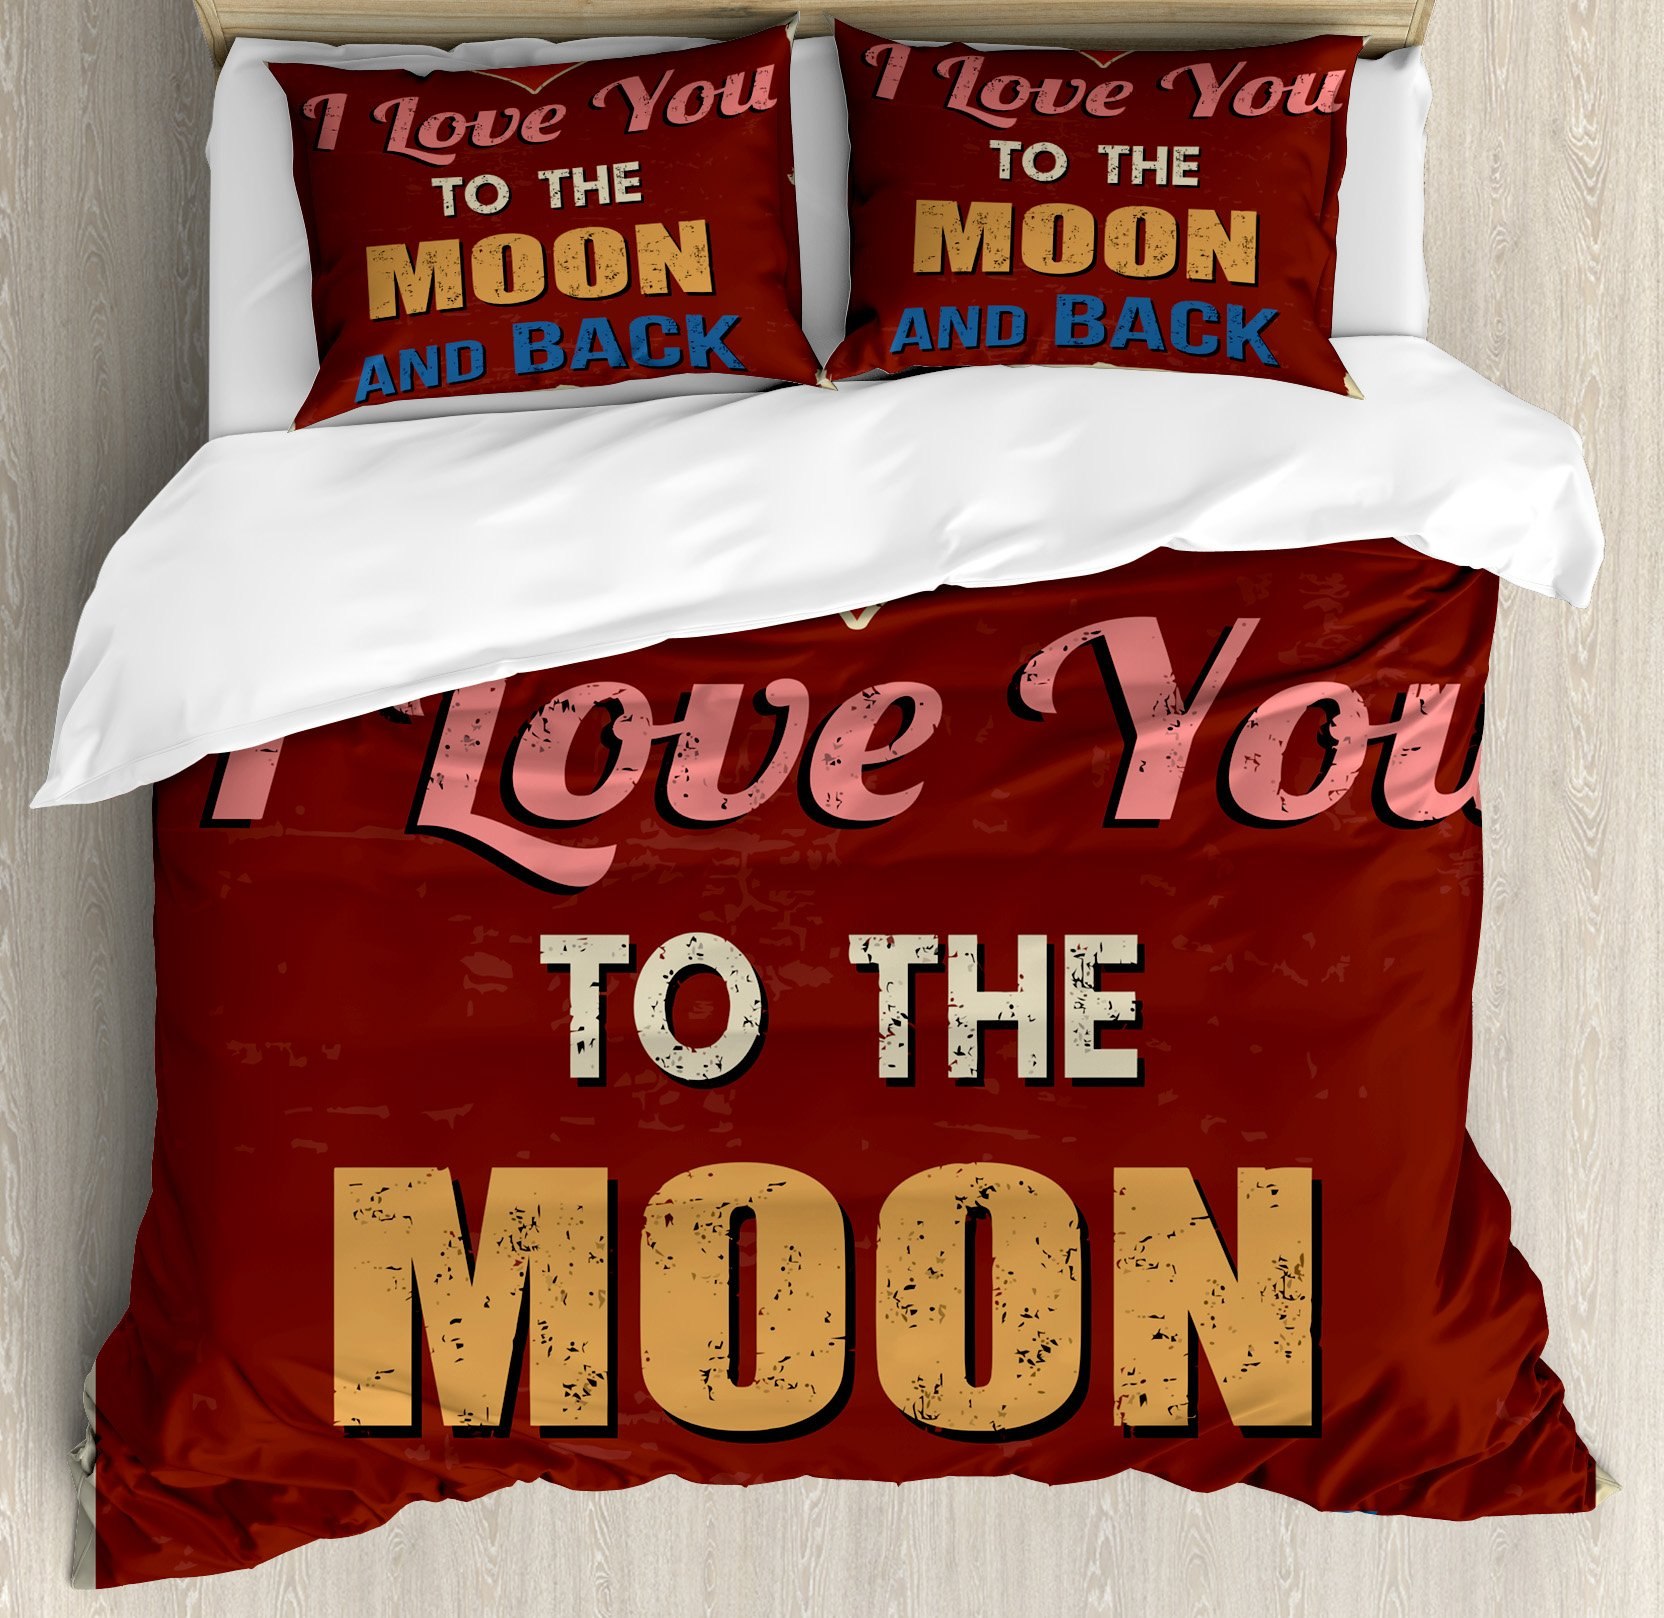 I Love You Duvet Cover Set King Size by Ambesonne, Vintage Style I Love You to the Moon and Back Calligraphy Nostalgic Romance, Decorative 3 Piece Bedding Set with 2 Pillow Shams, Ruby Marigold